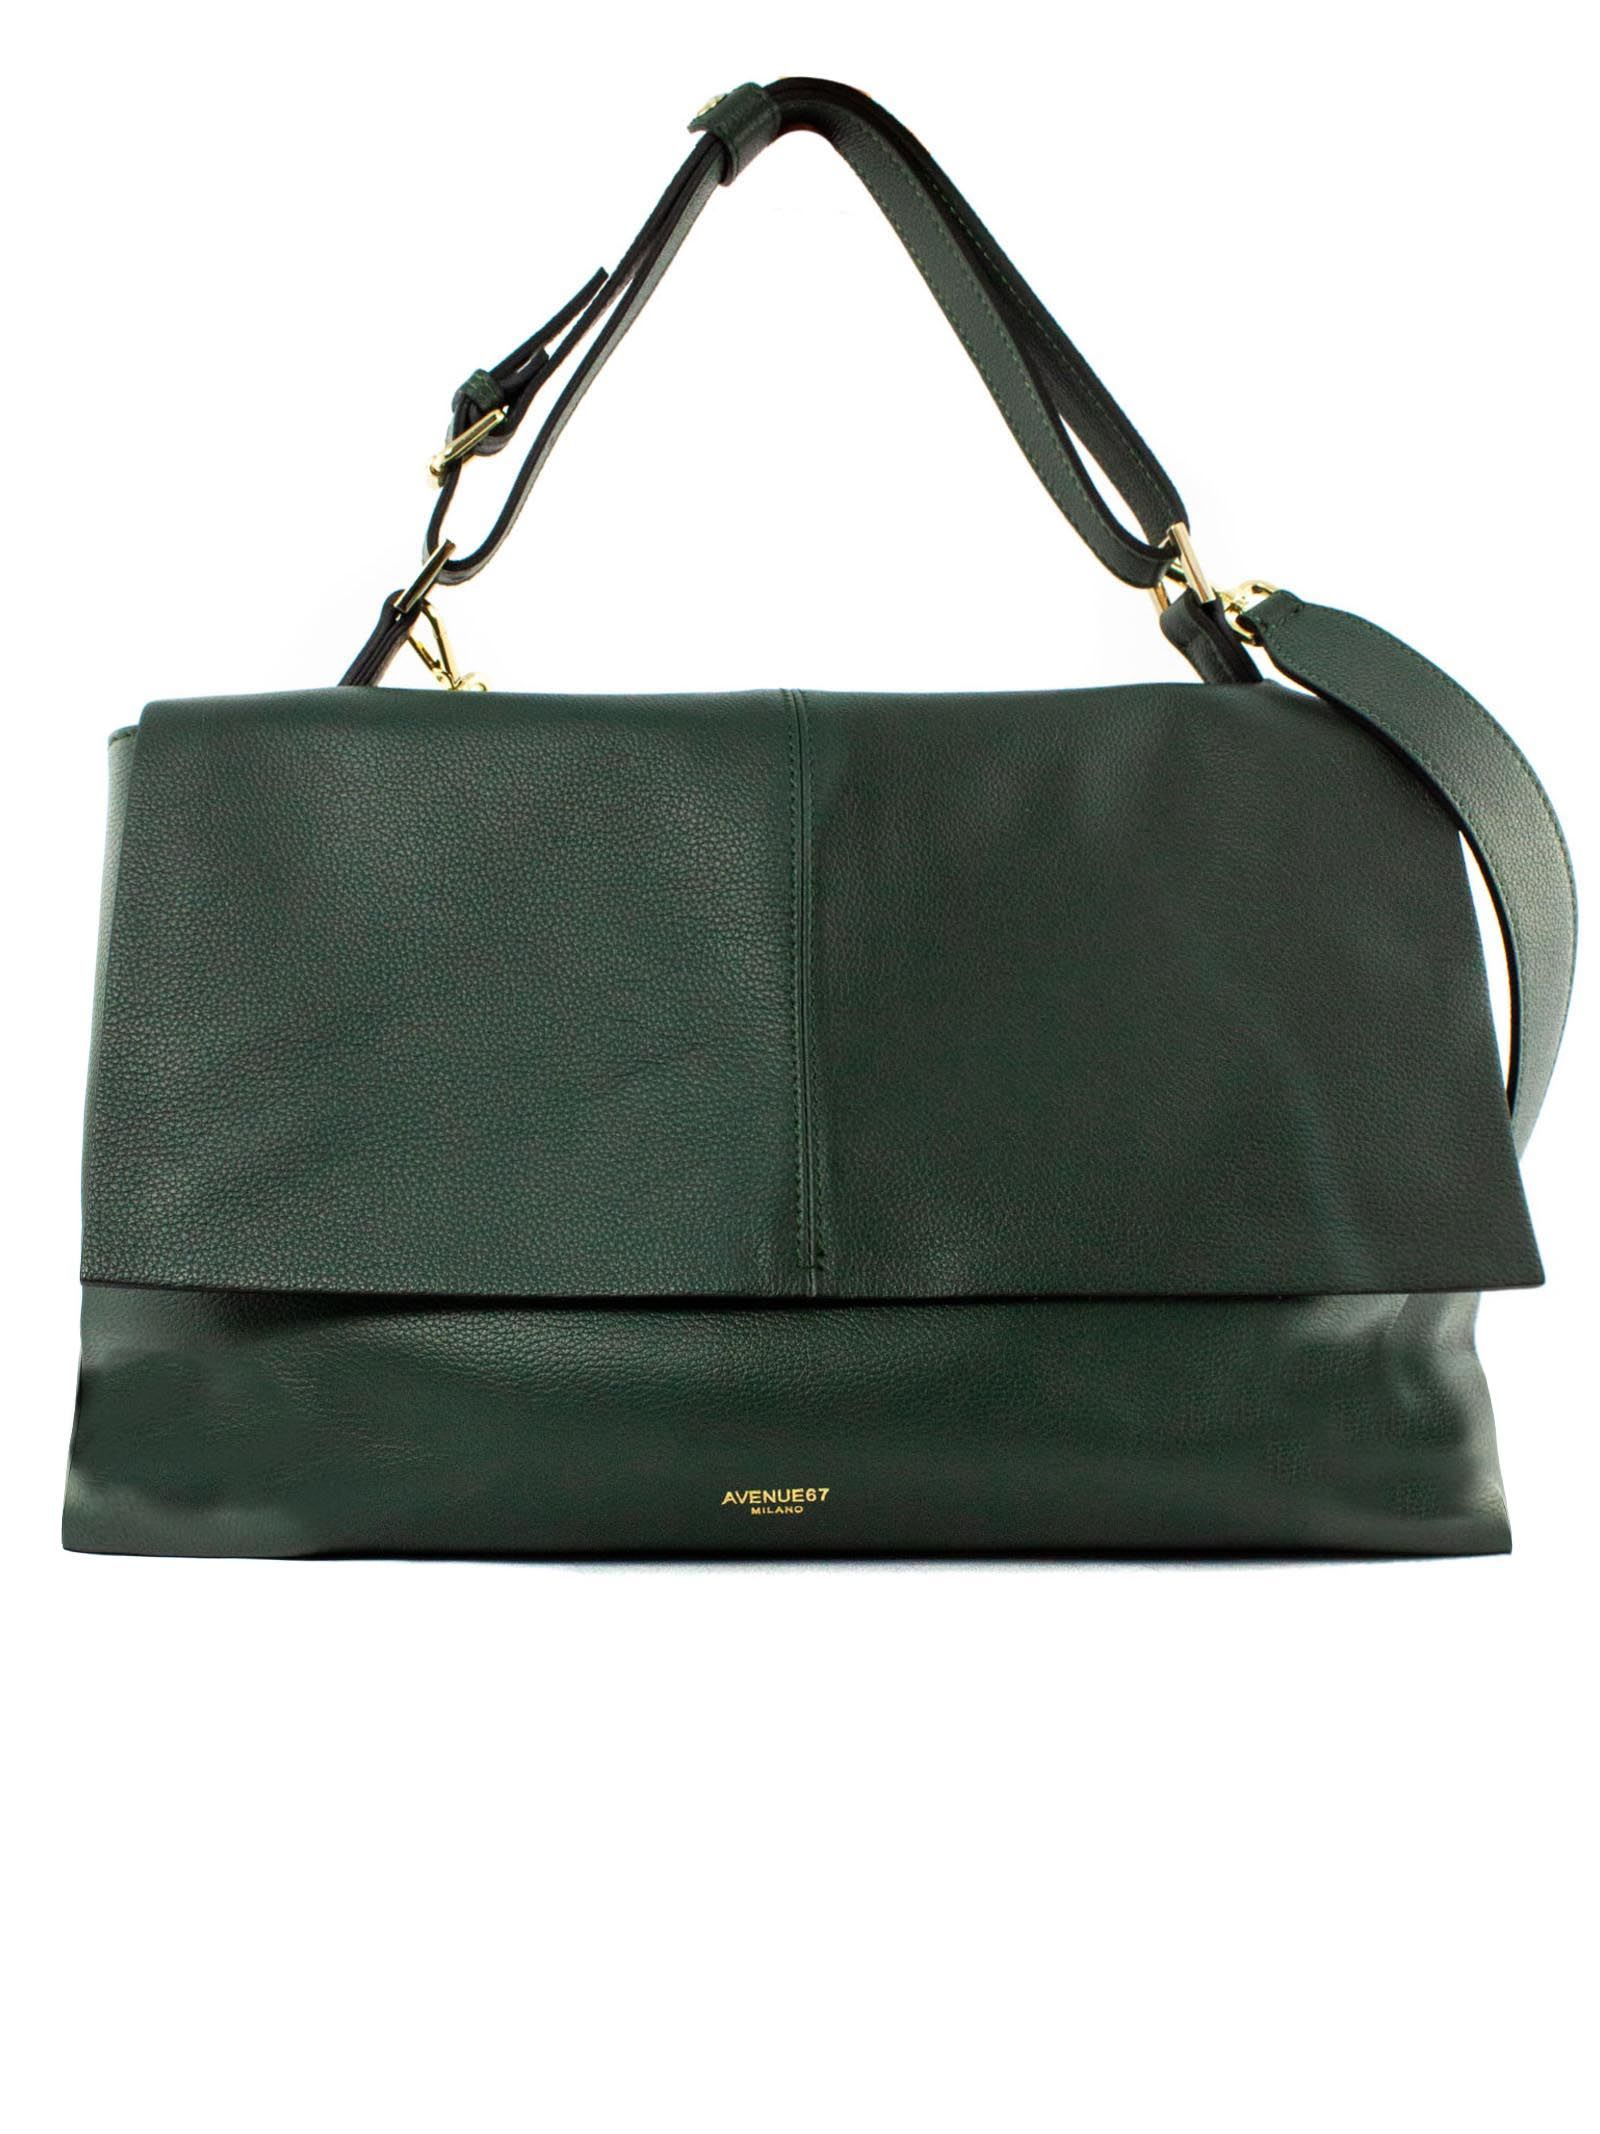 Elettra Giant Bag In Soft Green Leather